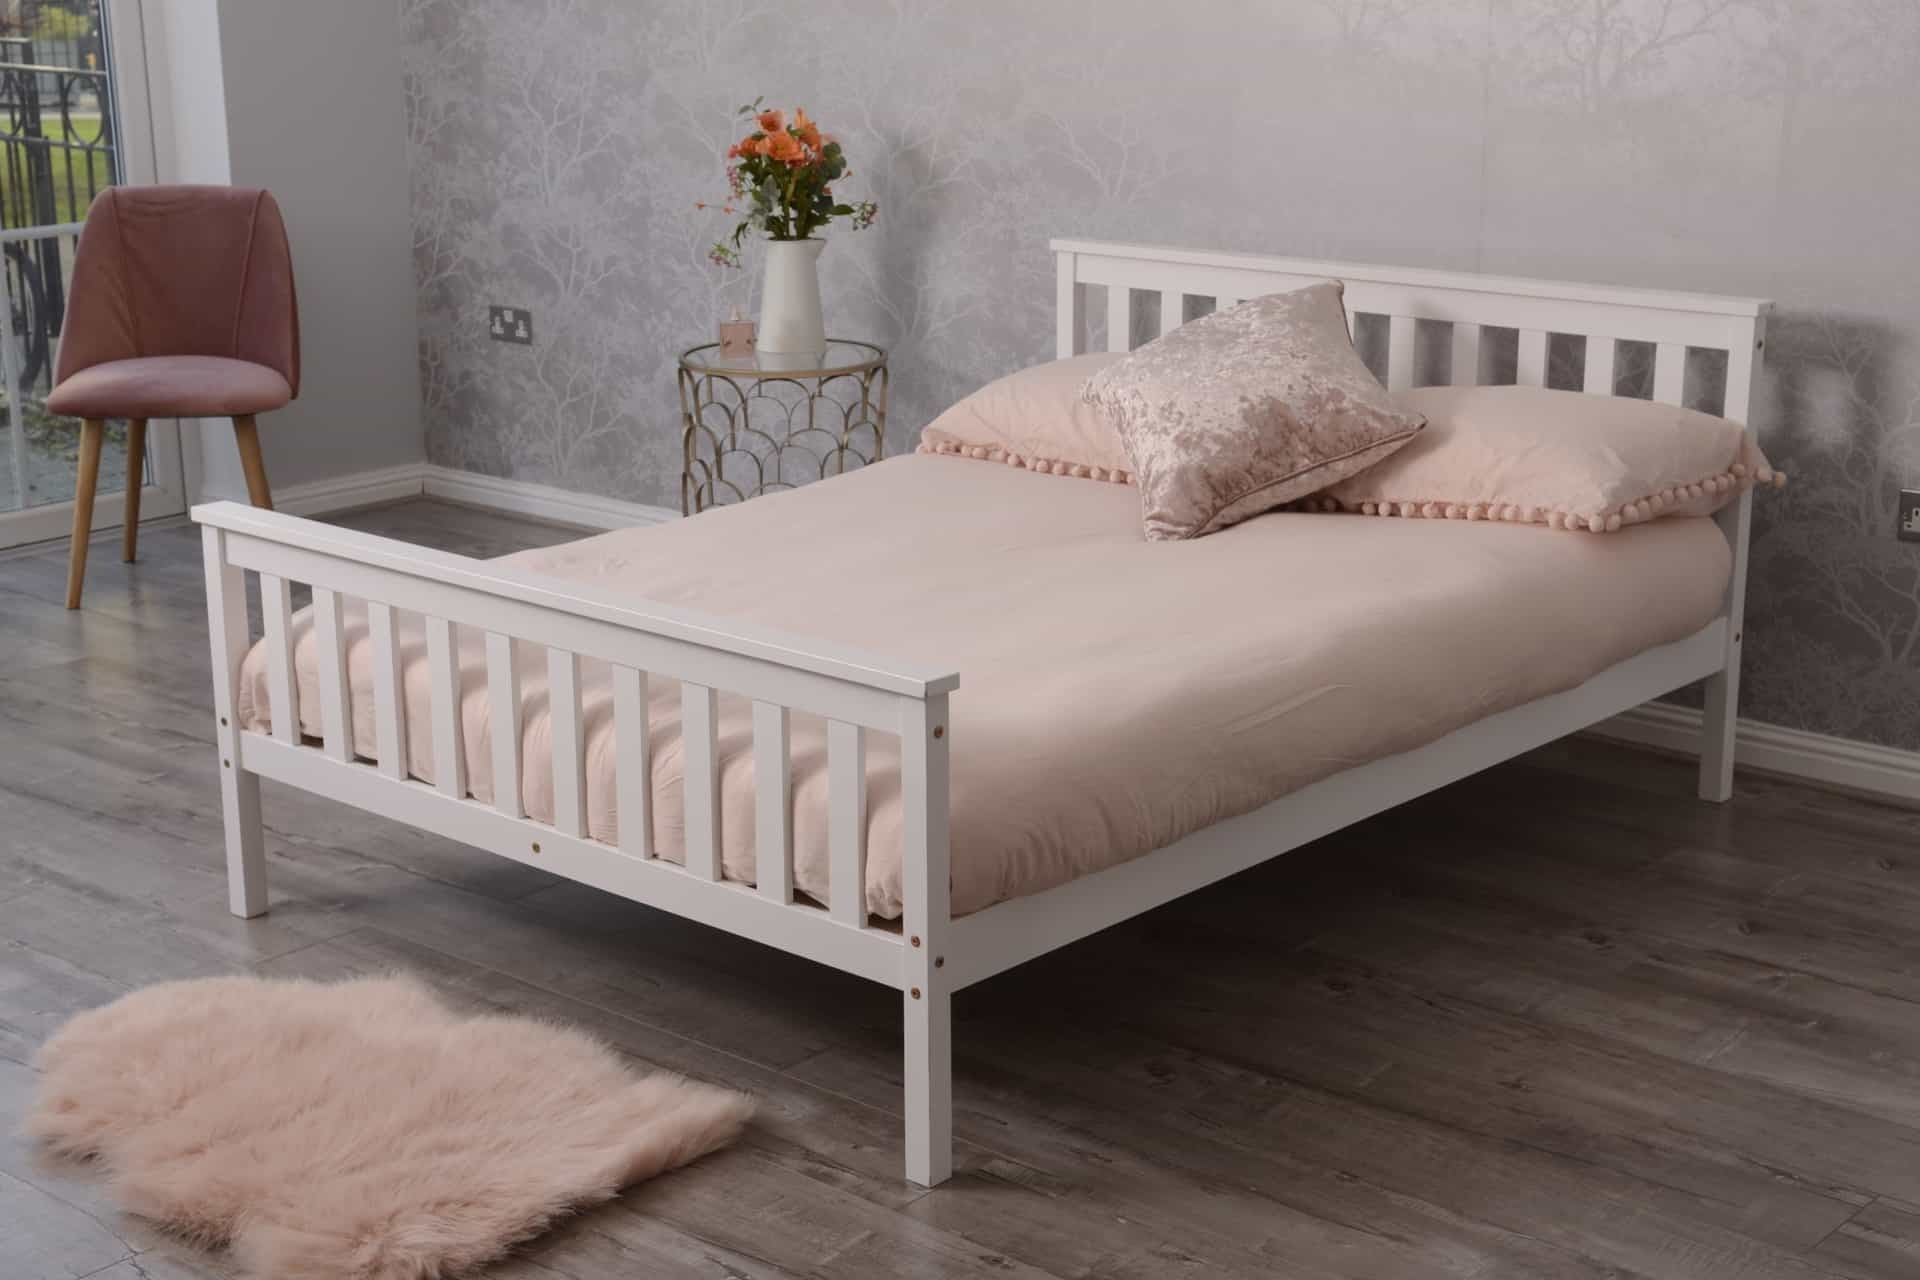 Double pine wood bed white dreams outdoors furniture dreams outdoors